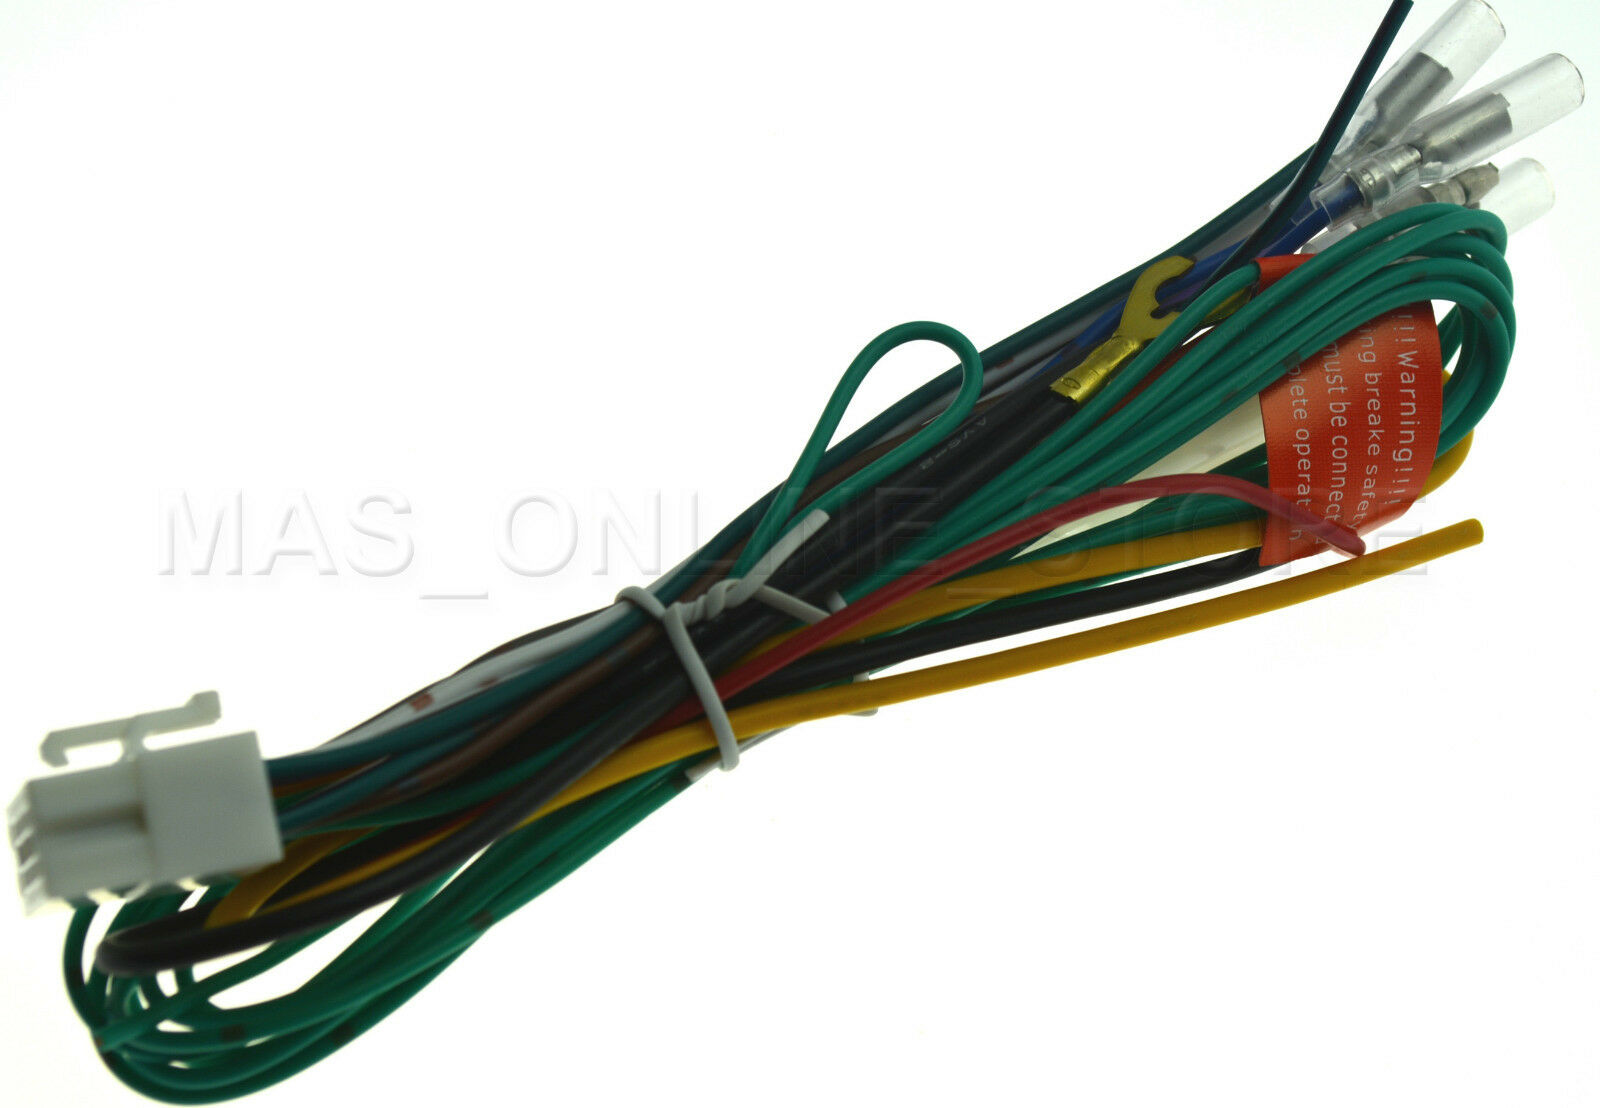 Clarion Vx 409 Vx409 Genuine Power Wire Harness pay?resize\\\\\\\\\\\\\\\\\\\\\\\\\\\\\\\=665%2C461\\\\\\\\\\\\\\\\\\\\\\\\\\\\\\\&ssl\\\\\\\\\\\\\\\\\\\\\\\\\\\\\\\=1 clarion wiring harness adapter gandul 45 77 79 119 clarion vrx765vd wiring diagram at bayanpartner.co